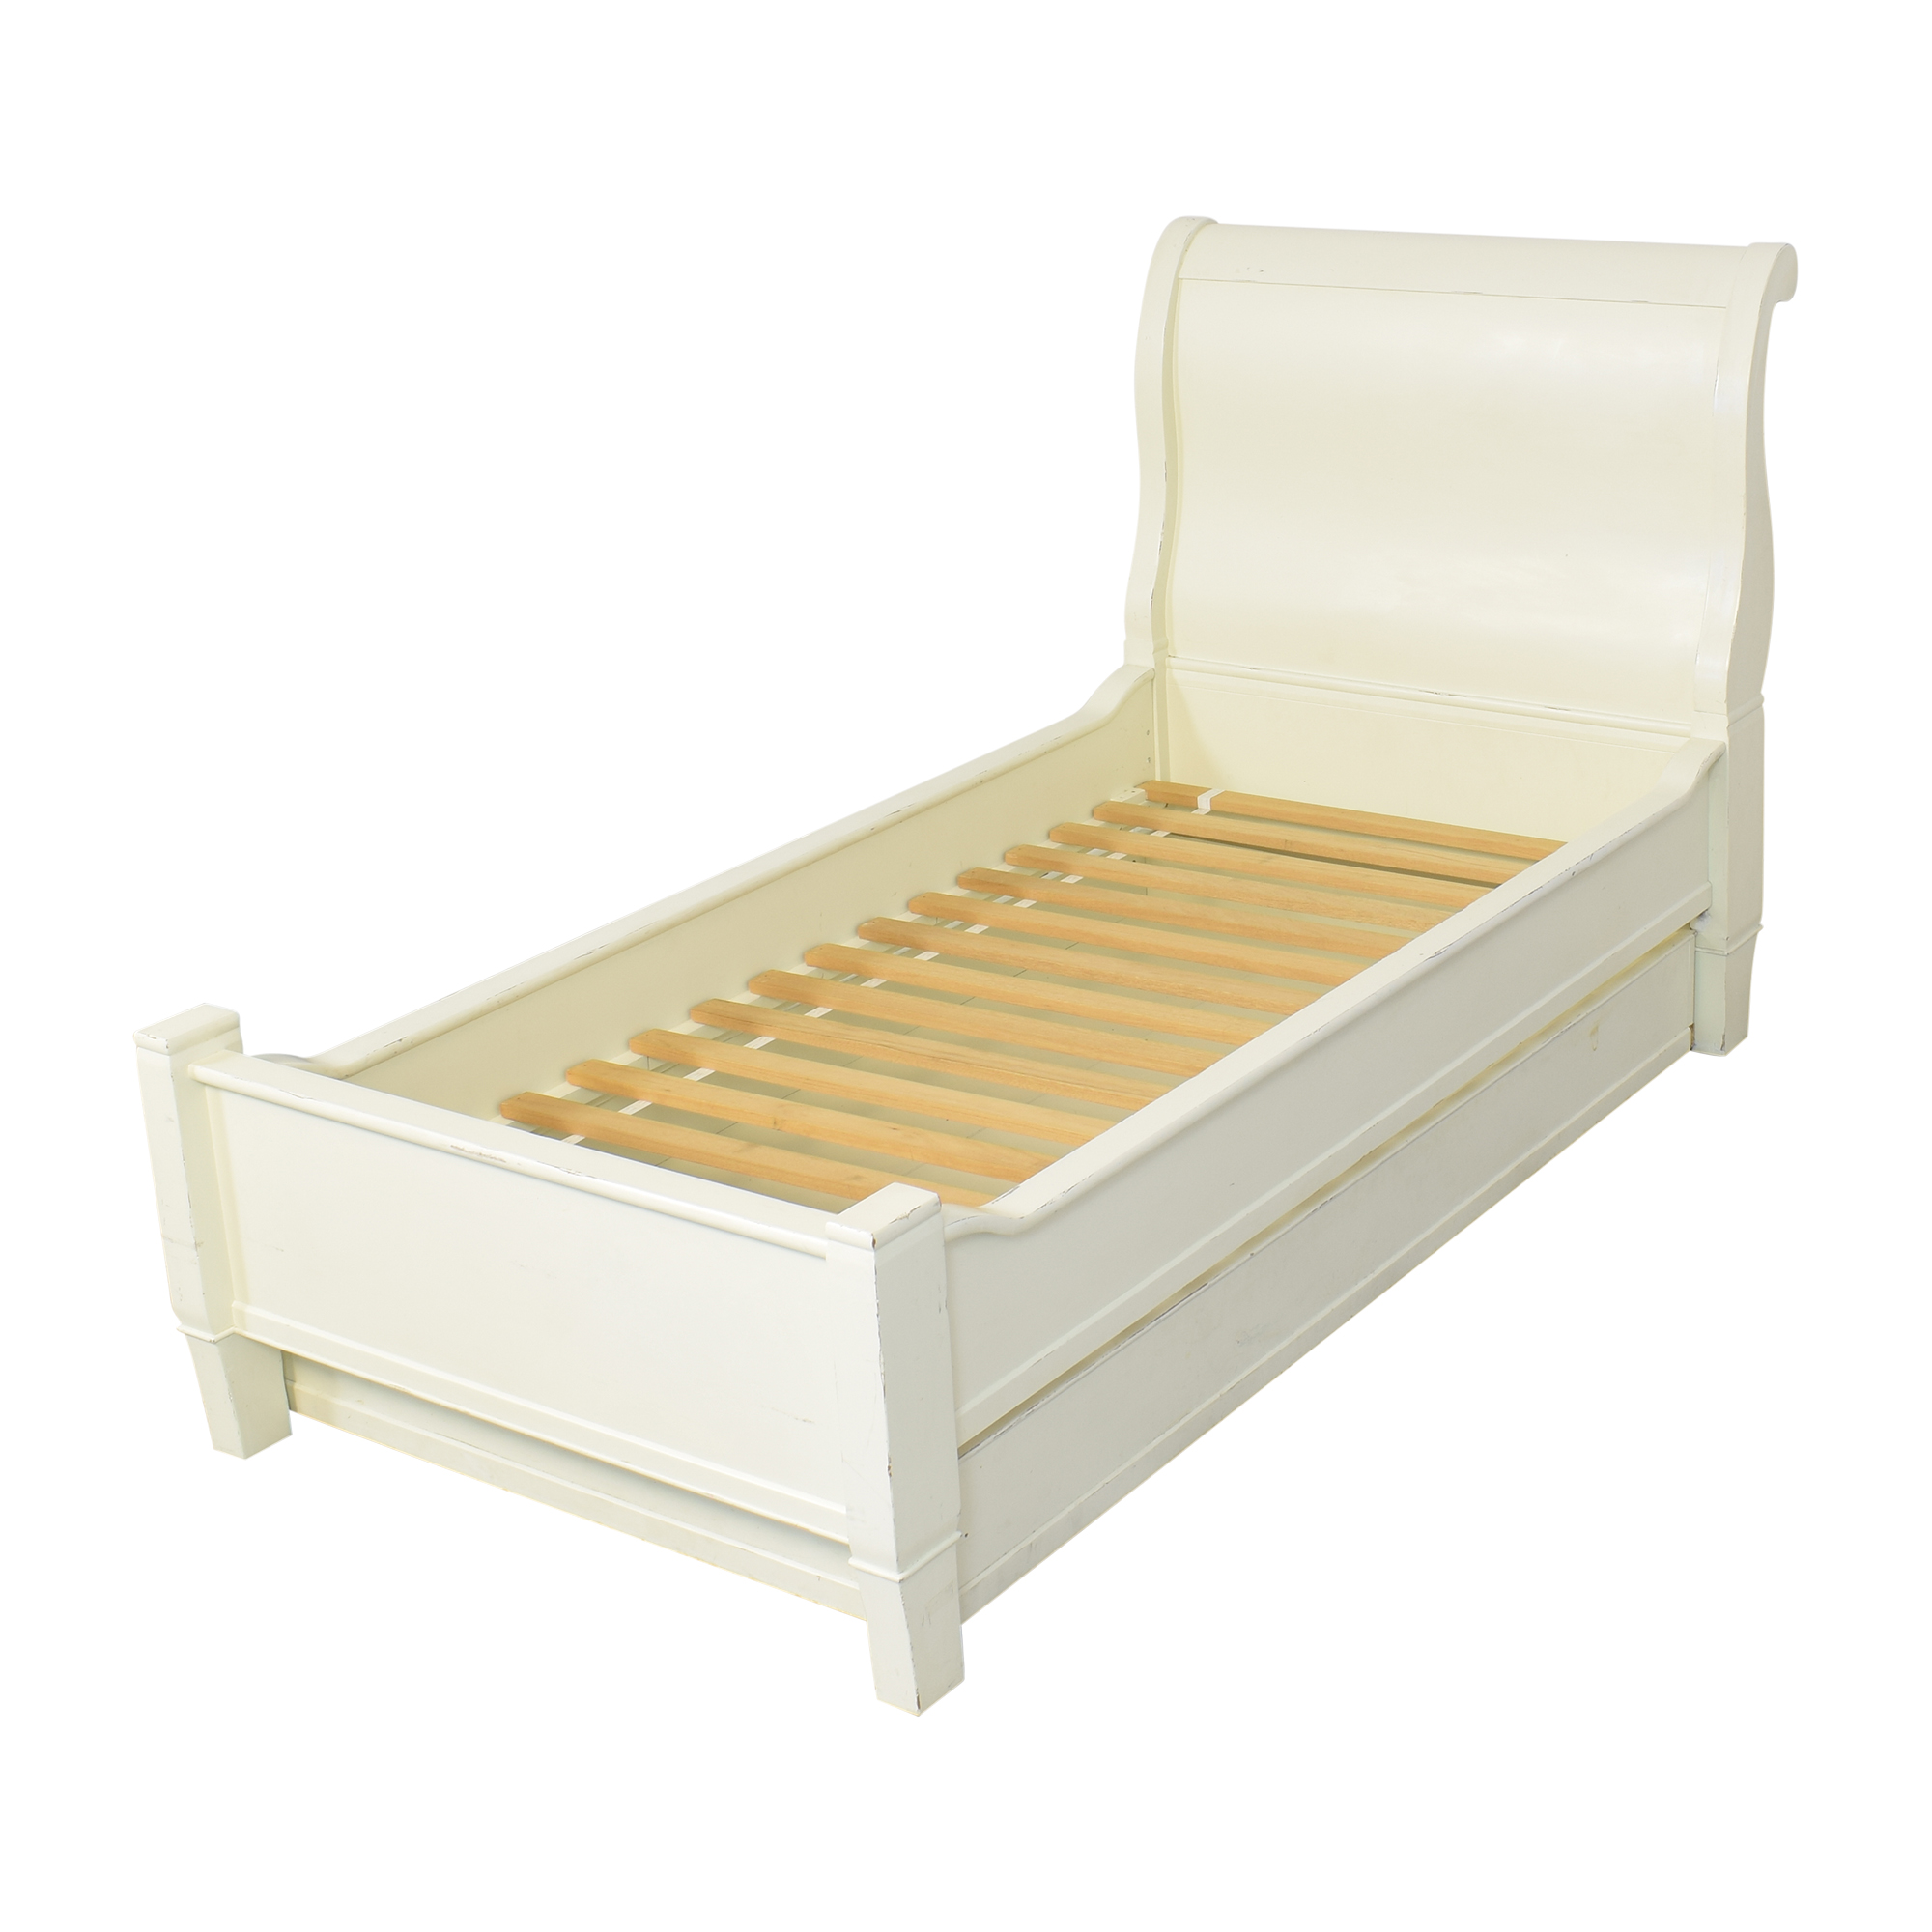 Pottery Barn Kids Pottery Barn Kids Twin Sleigh Bed with Trundle coupon